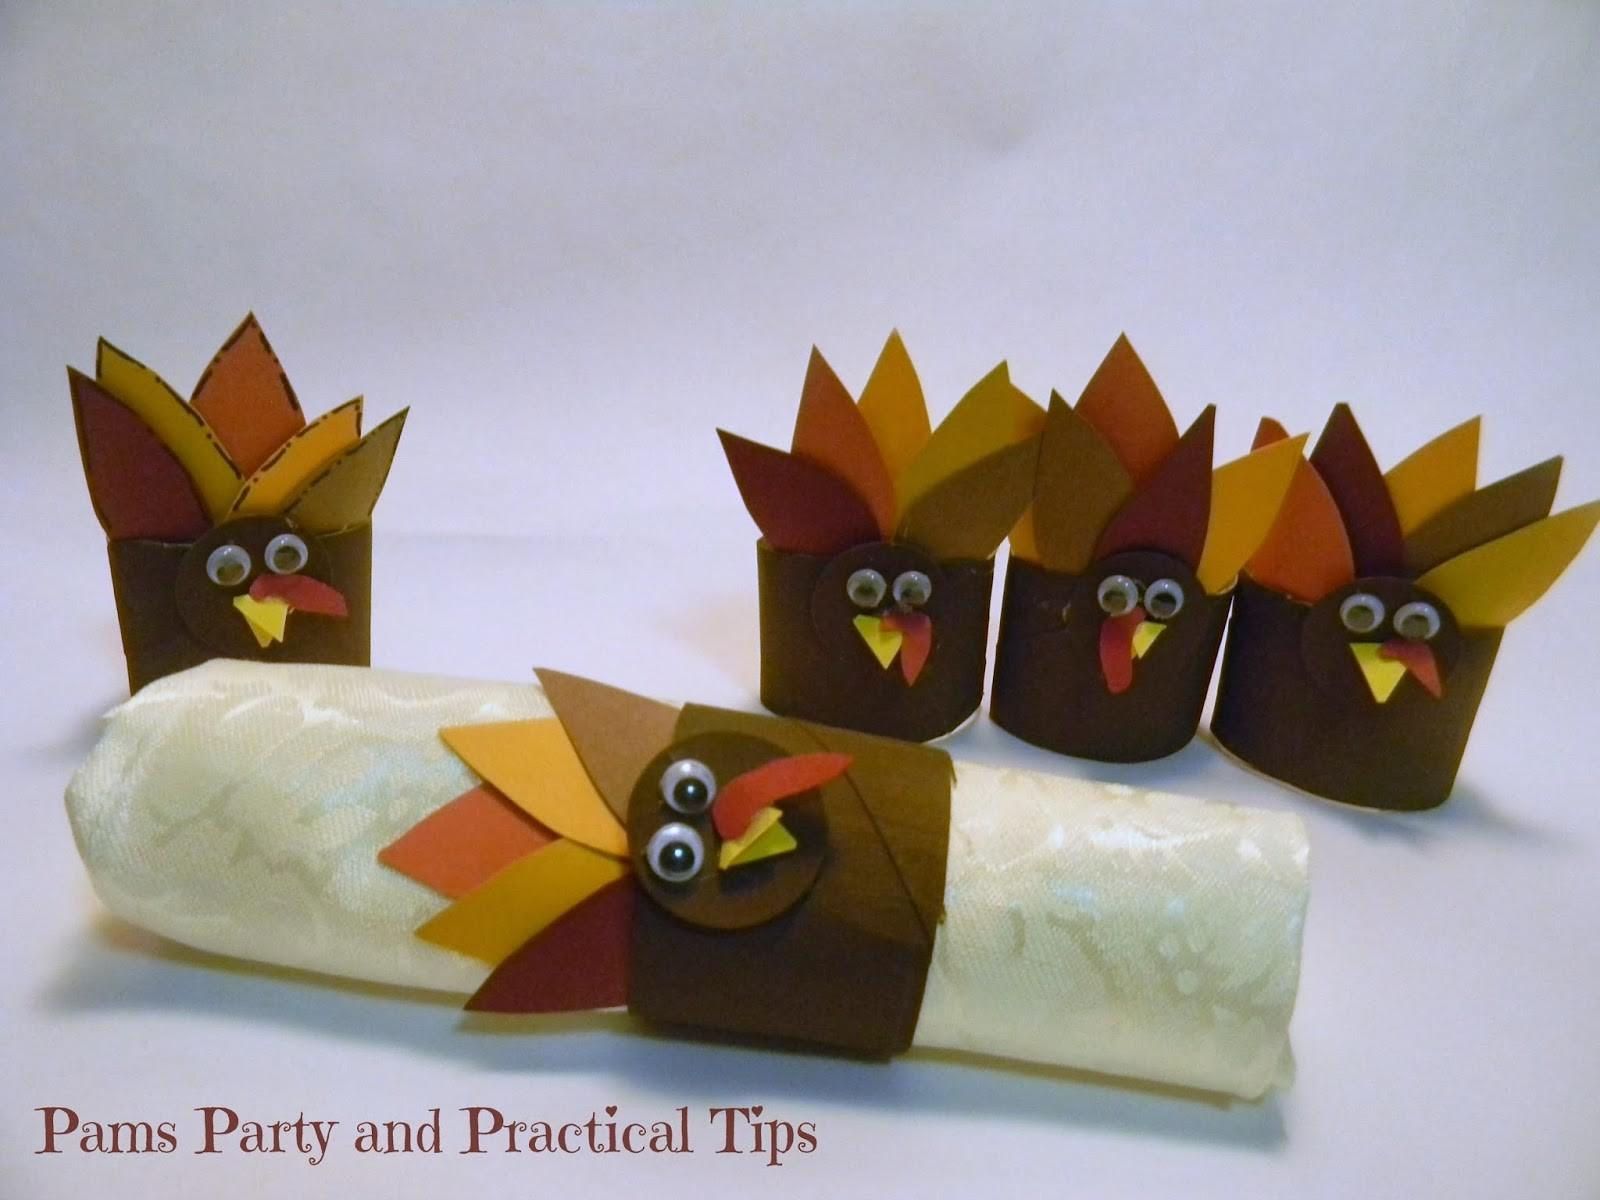 Pams Party Practical Tips Turkey Napkin Rings